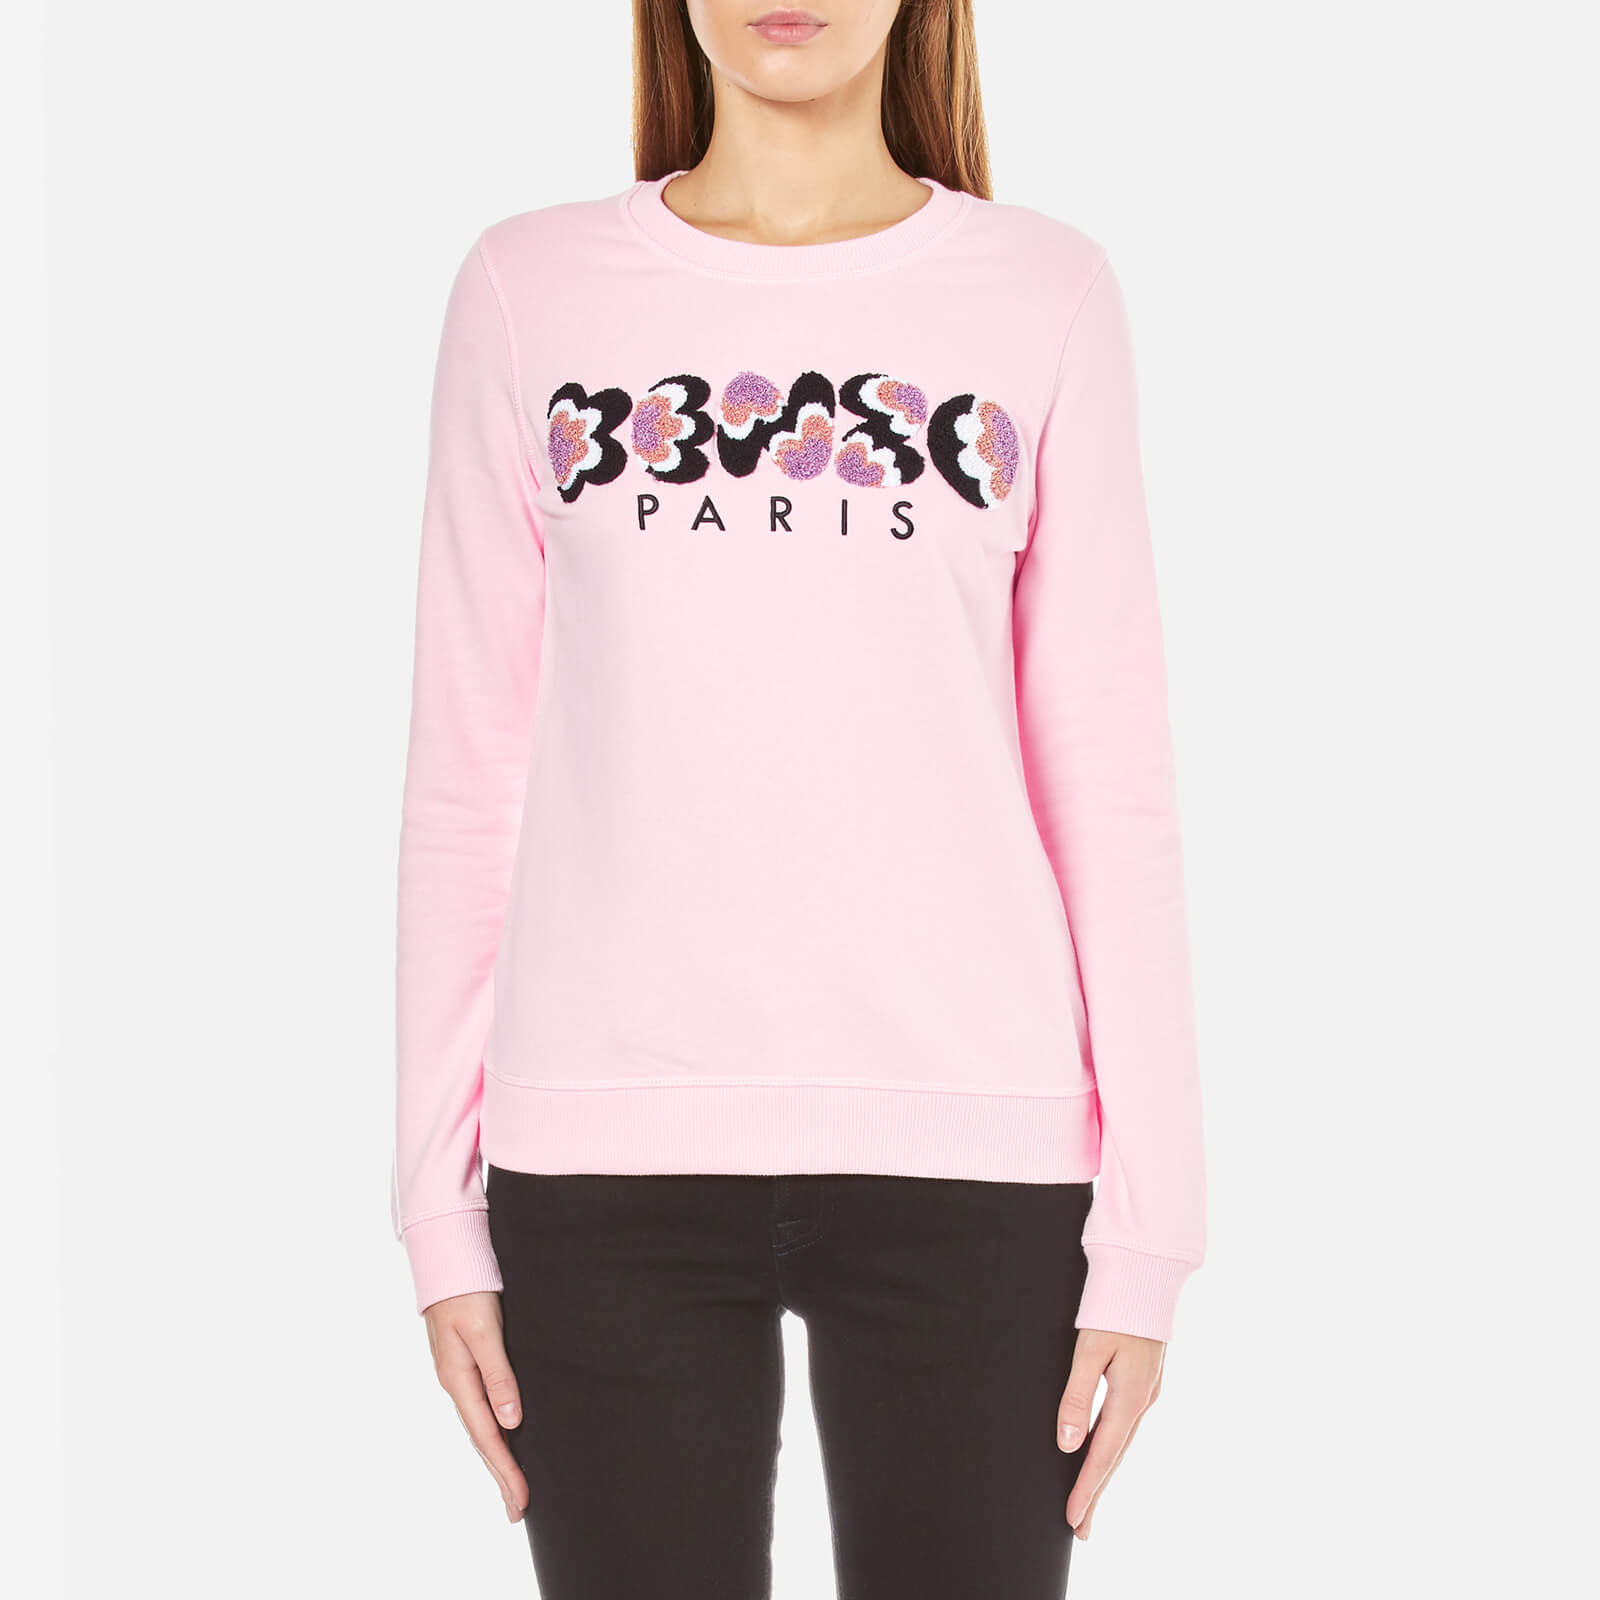 46a39715 KENZO Women's Embroidered Logo Sweatshirt - Pale Pink - Free UK Delivery  over £50